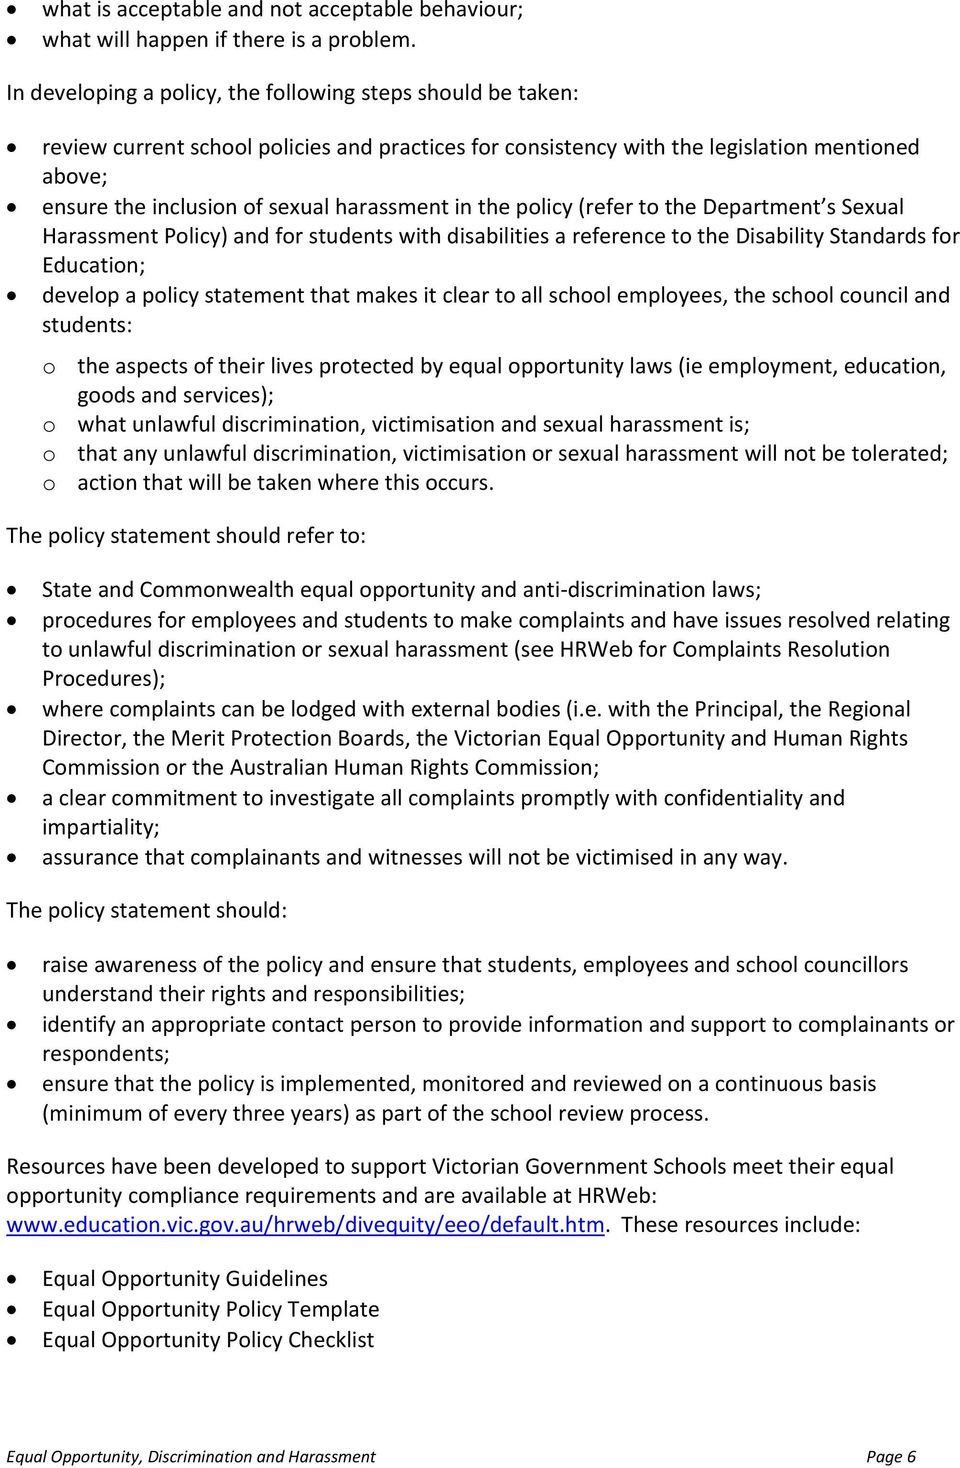 equal opportunities policy statement template best business template equal opportunity discrimination and harassment pdf